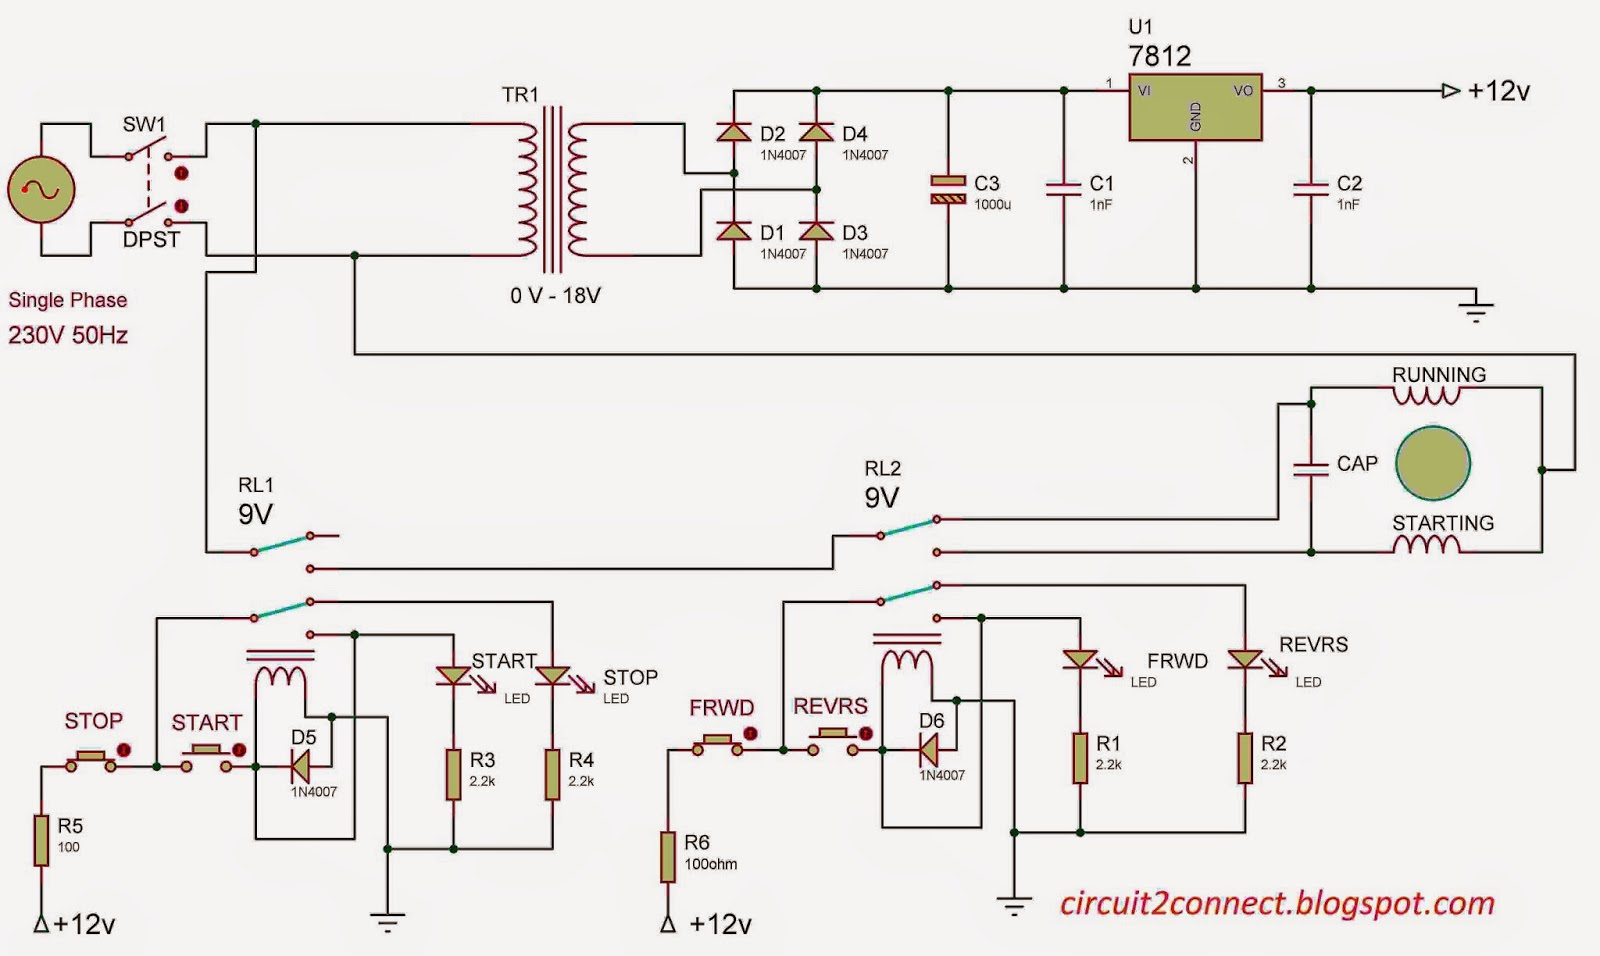 Single Phase Induction Motor Direction control v1 Circuit 2 Connect